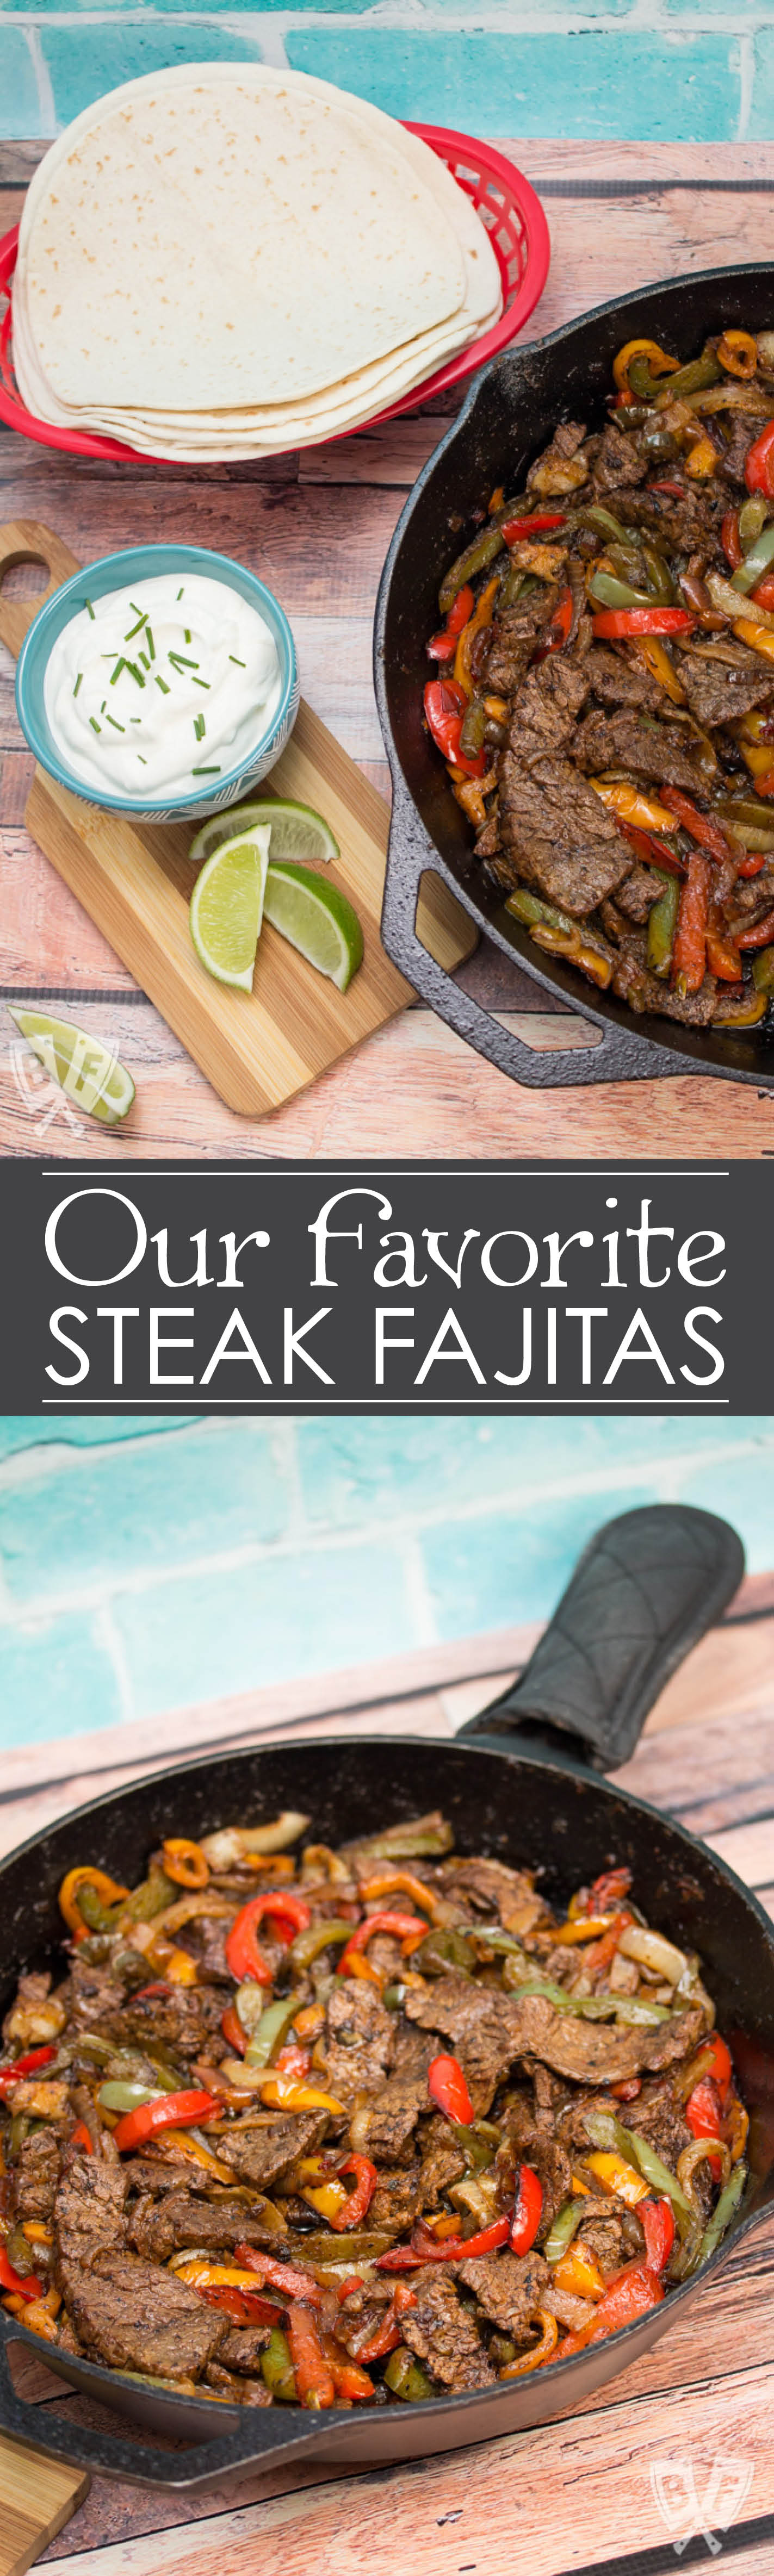 Our Favorite Steak Fajitas: Our Favorite Steak Fajitas: These tender steak fajitas are one of my family's very favorite meals - a perfect Tex-Mex dinner made in a single cast iron skillet.